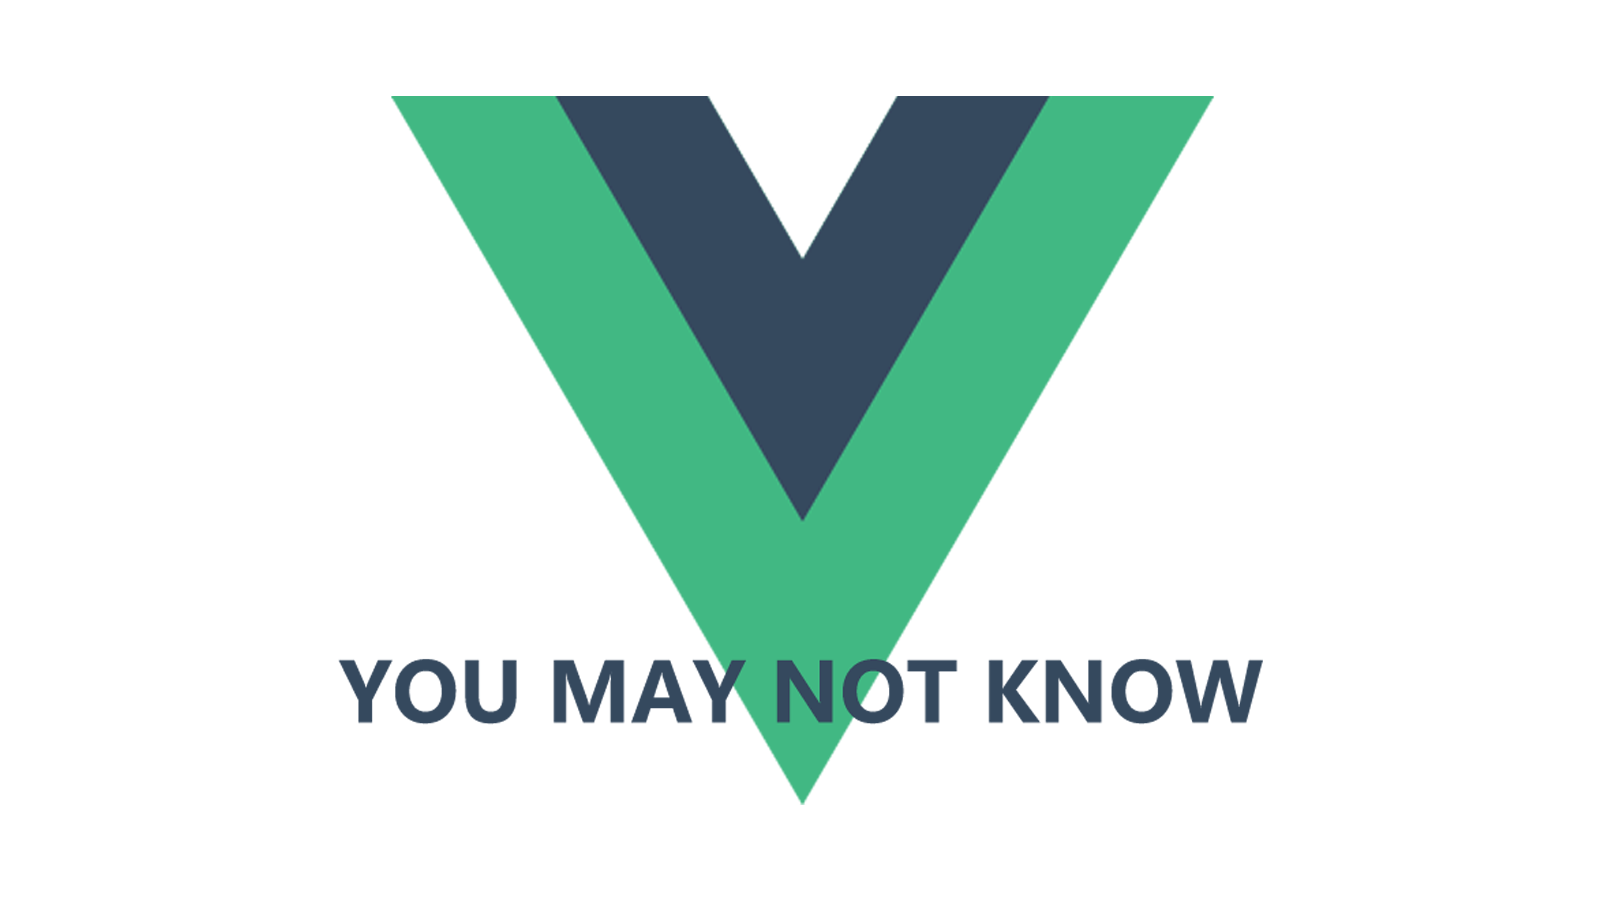 You may know Vuejs